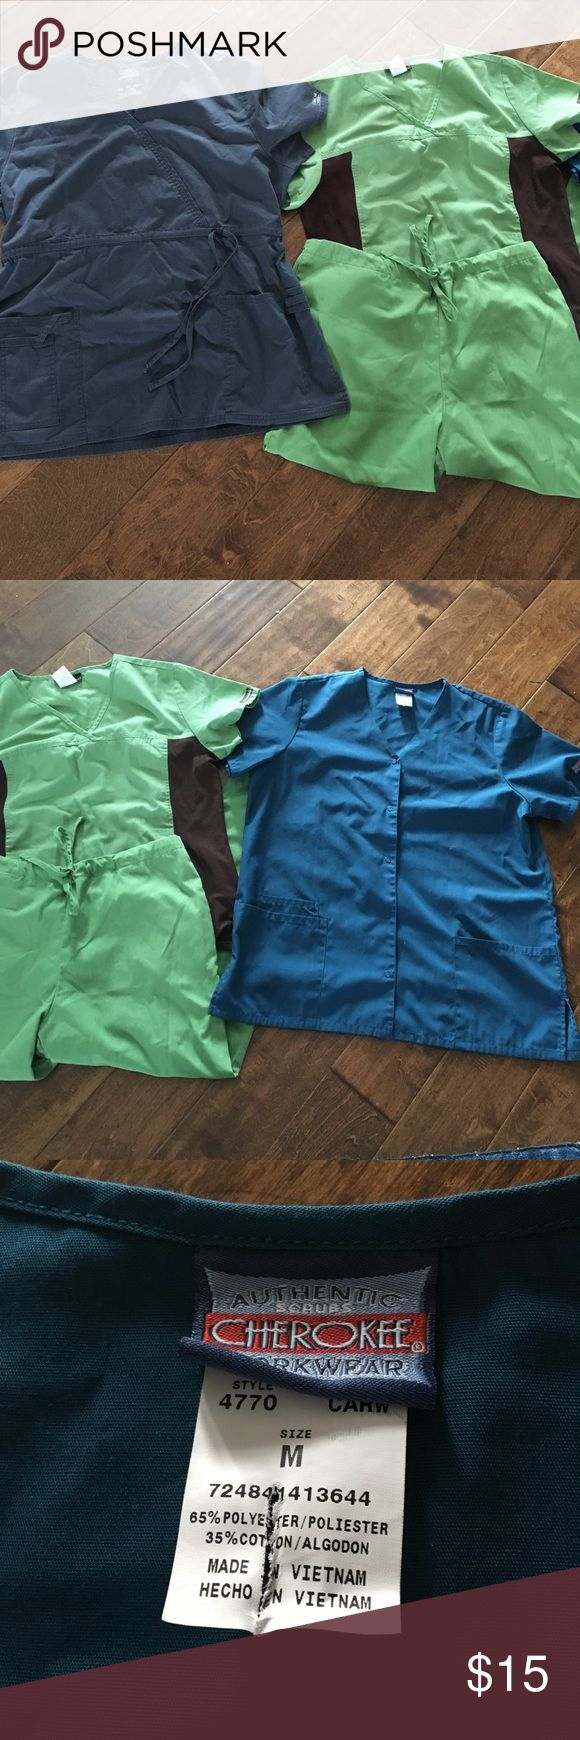 Scrubs bundle! Cherokee brand! Short sleeve jacket size M • grey top size large but it ties in the front so it fits like a loose M • green pants (M) along with matching green/brown top (M)• all great condition! Smoke free home! Cherokee Other